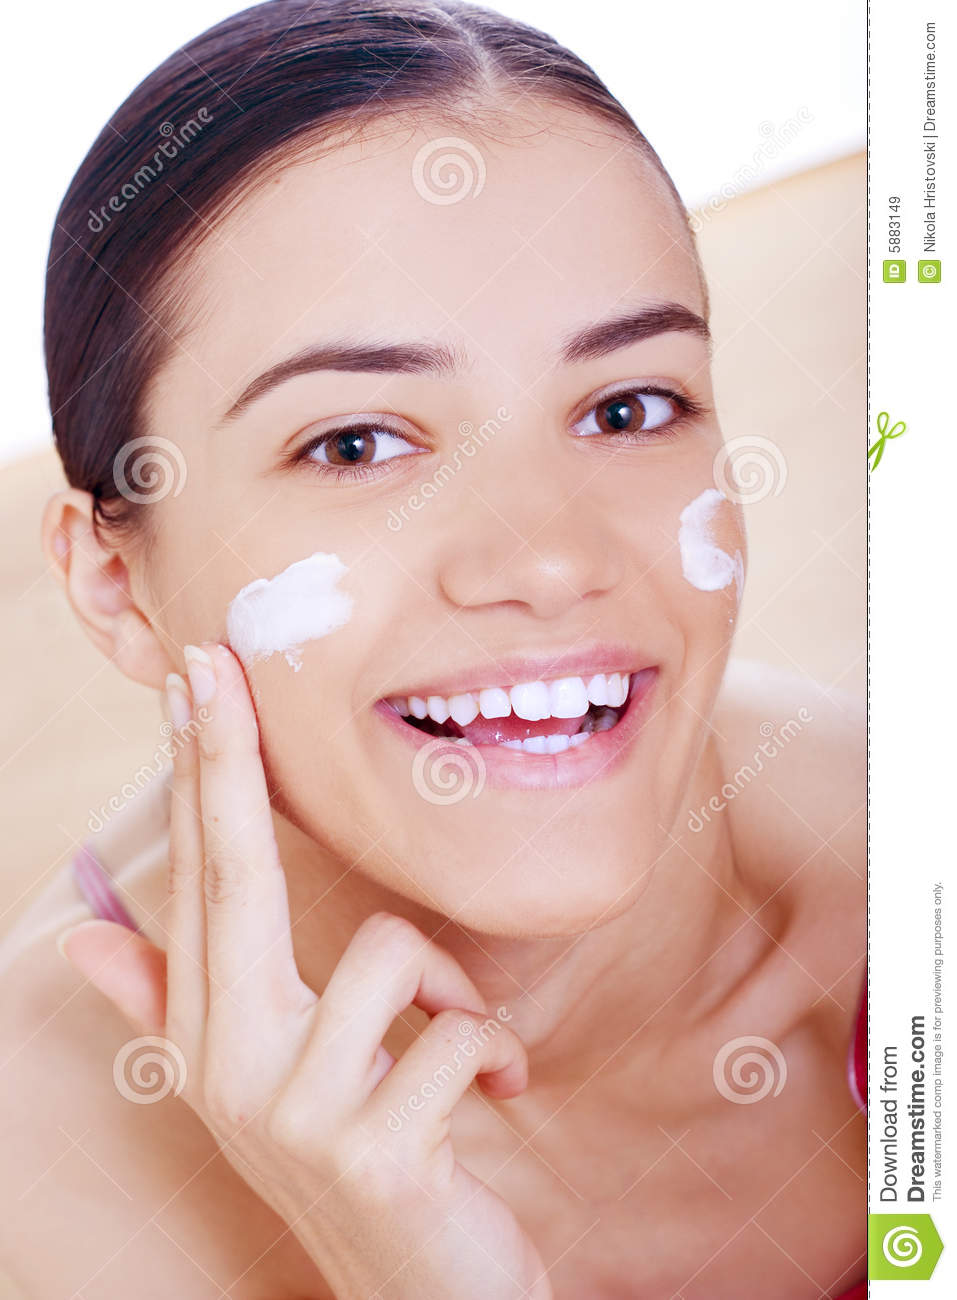 Woman Applying Cream On Her Face Royalty Free Stock Images Image 5883149